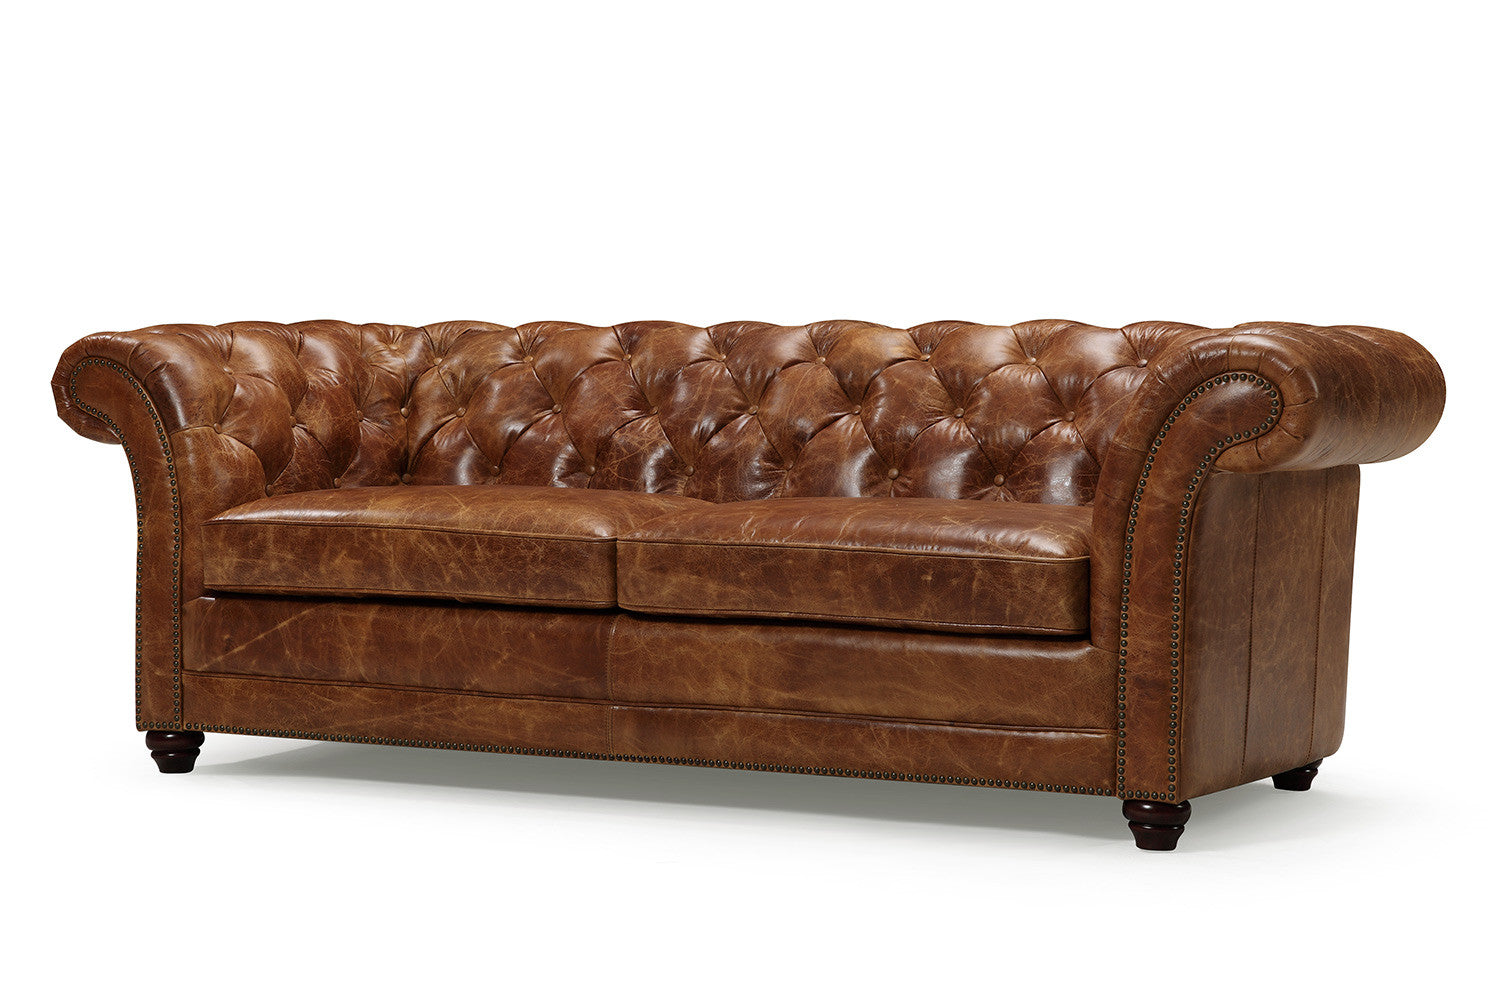 The Westminster Chesterfield Leather Sofa Rose And Moore ~ Cheap Tufted Leather Sofa